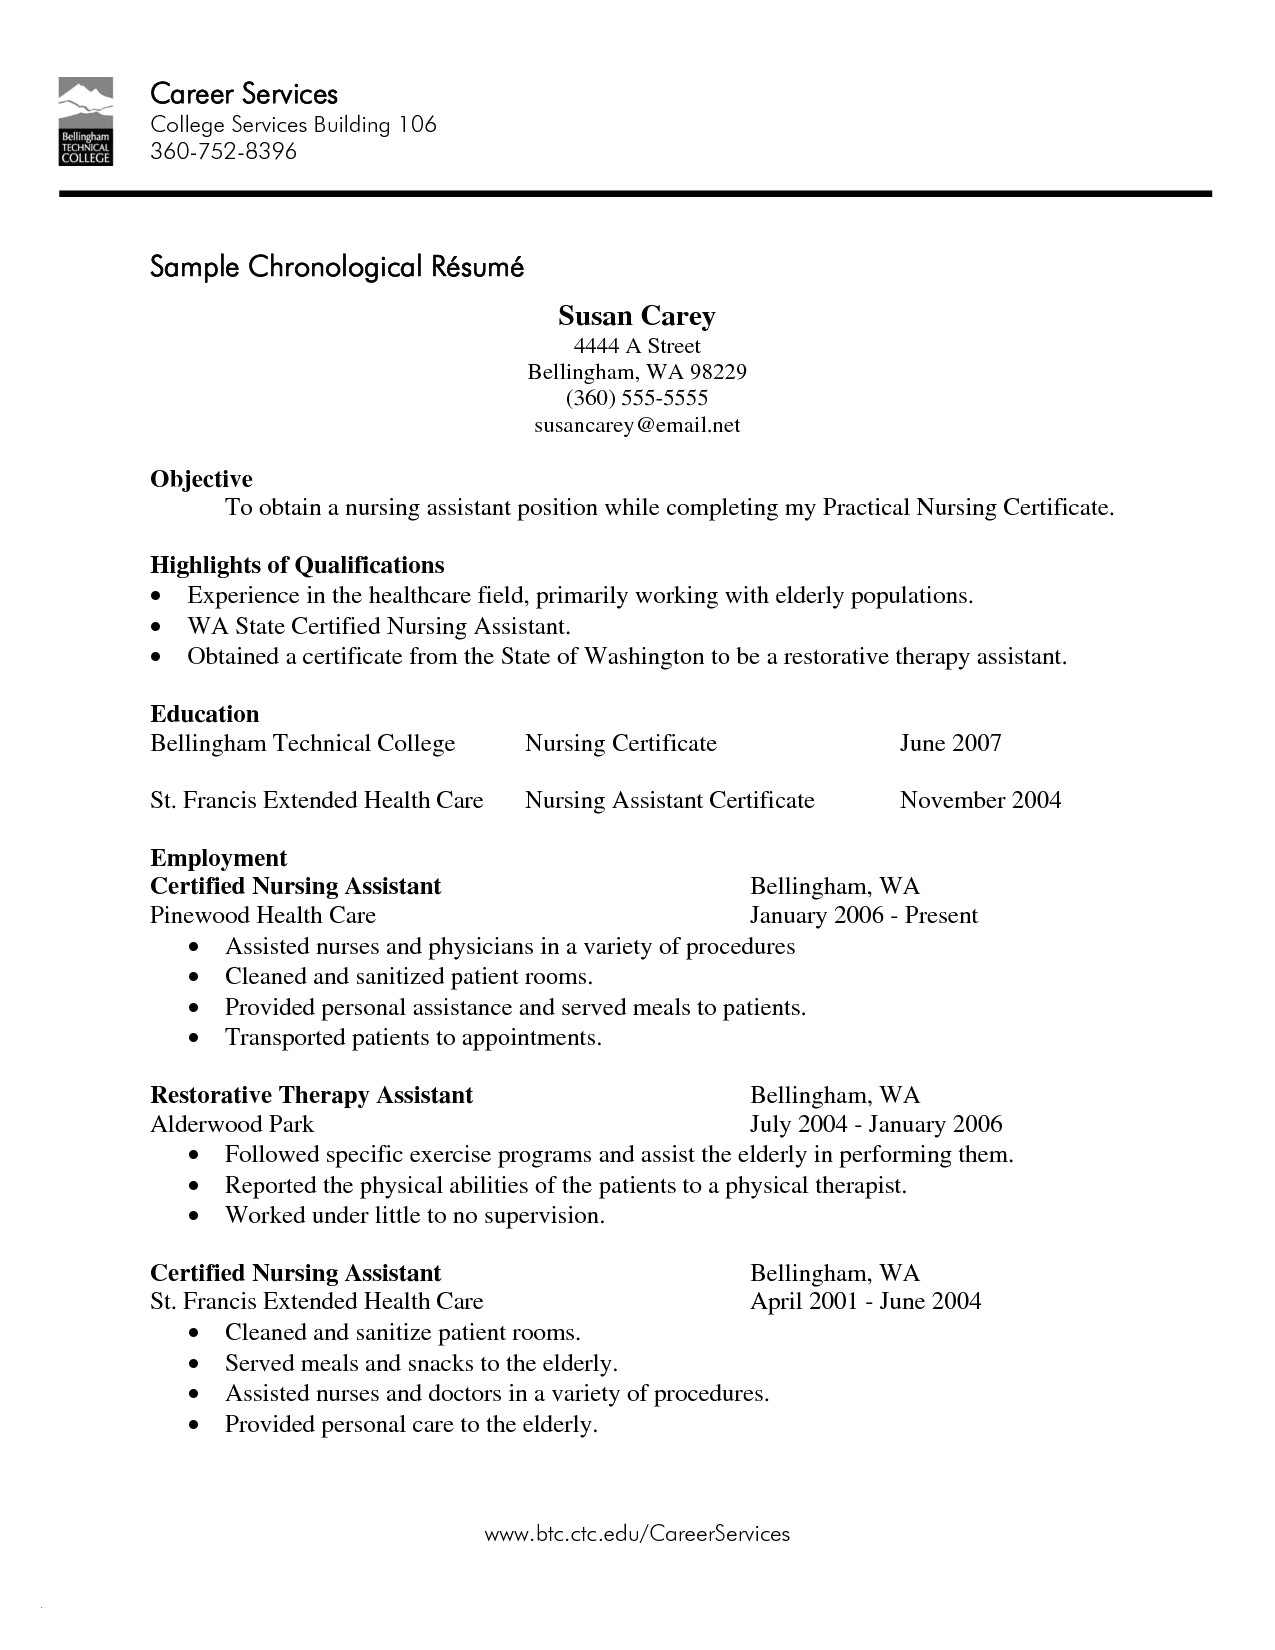 College Golf Resume Template - 41 Fresh College Golf Resume